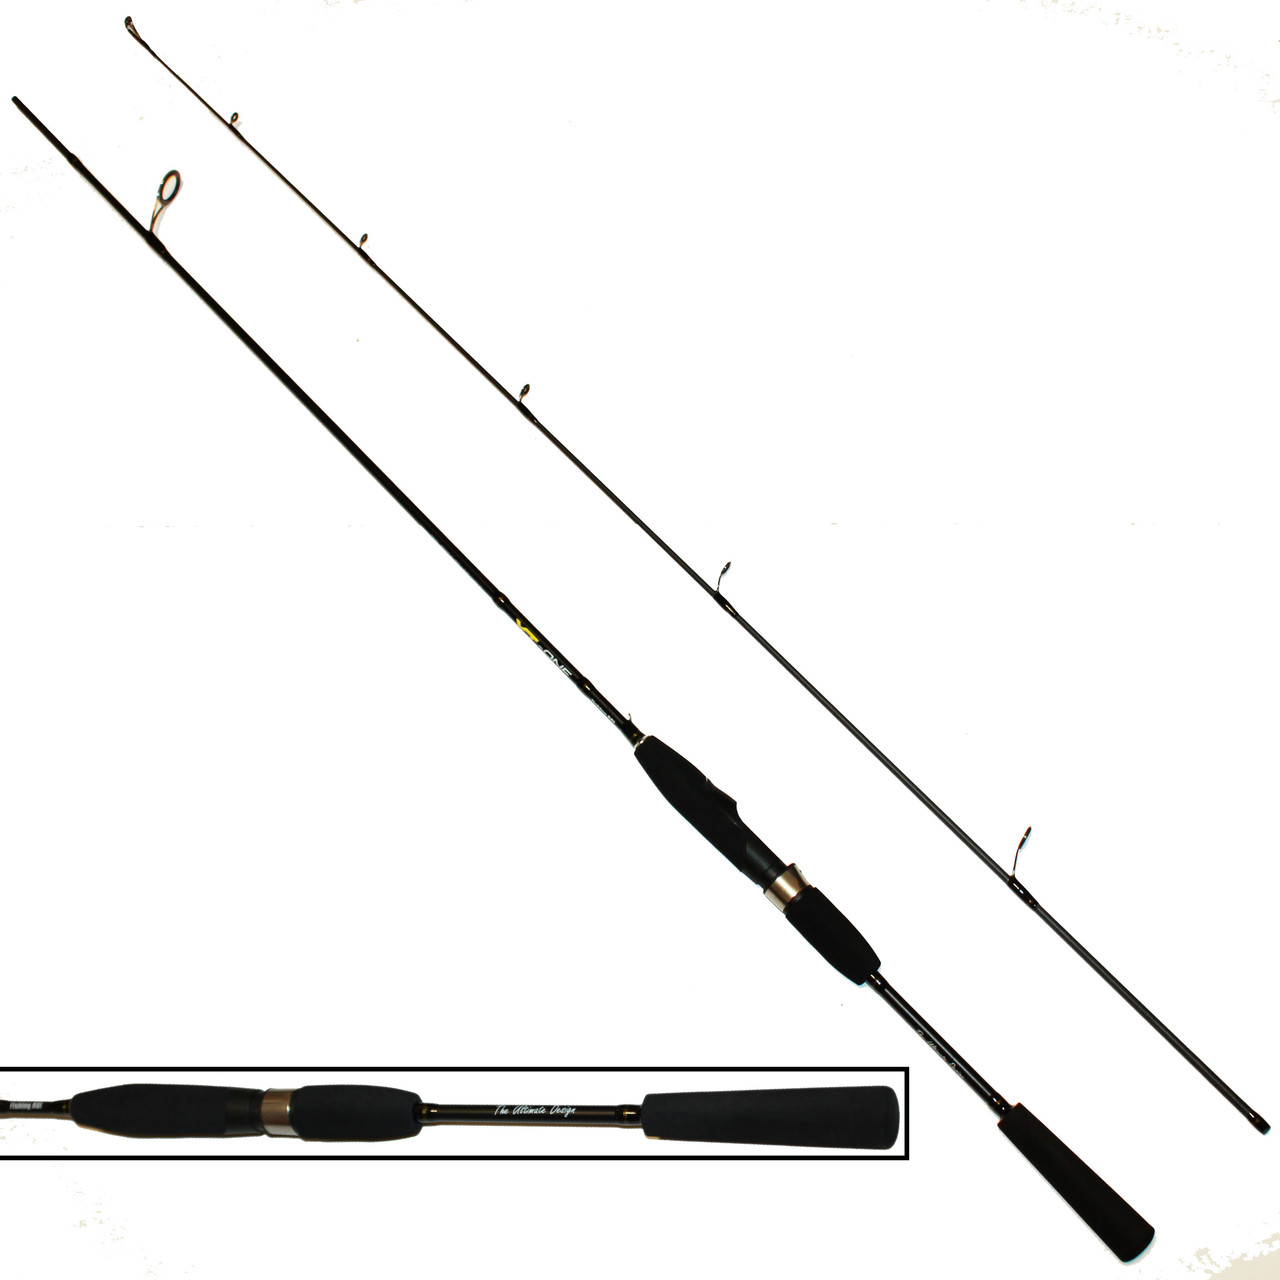 Спиннинг Fishing ROI XT-One 2.4 м. (тест 5-25 г.)